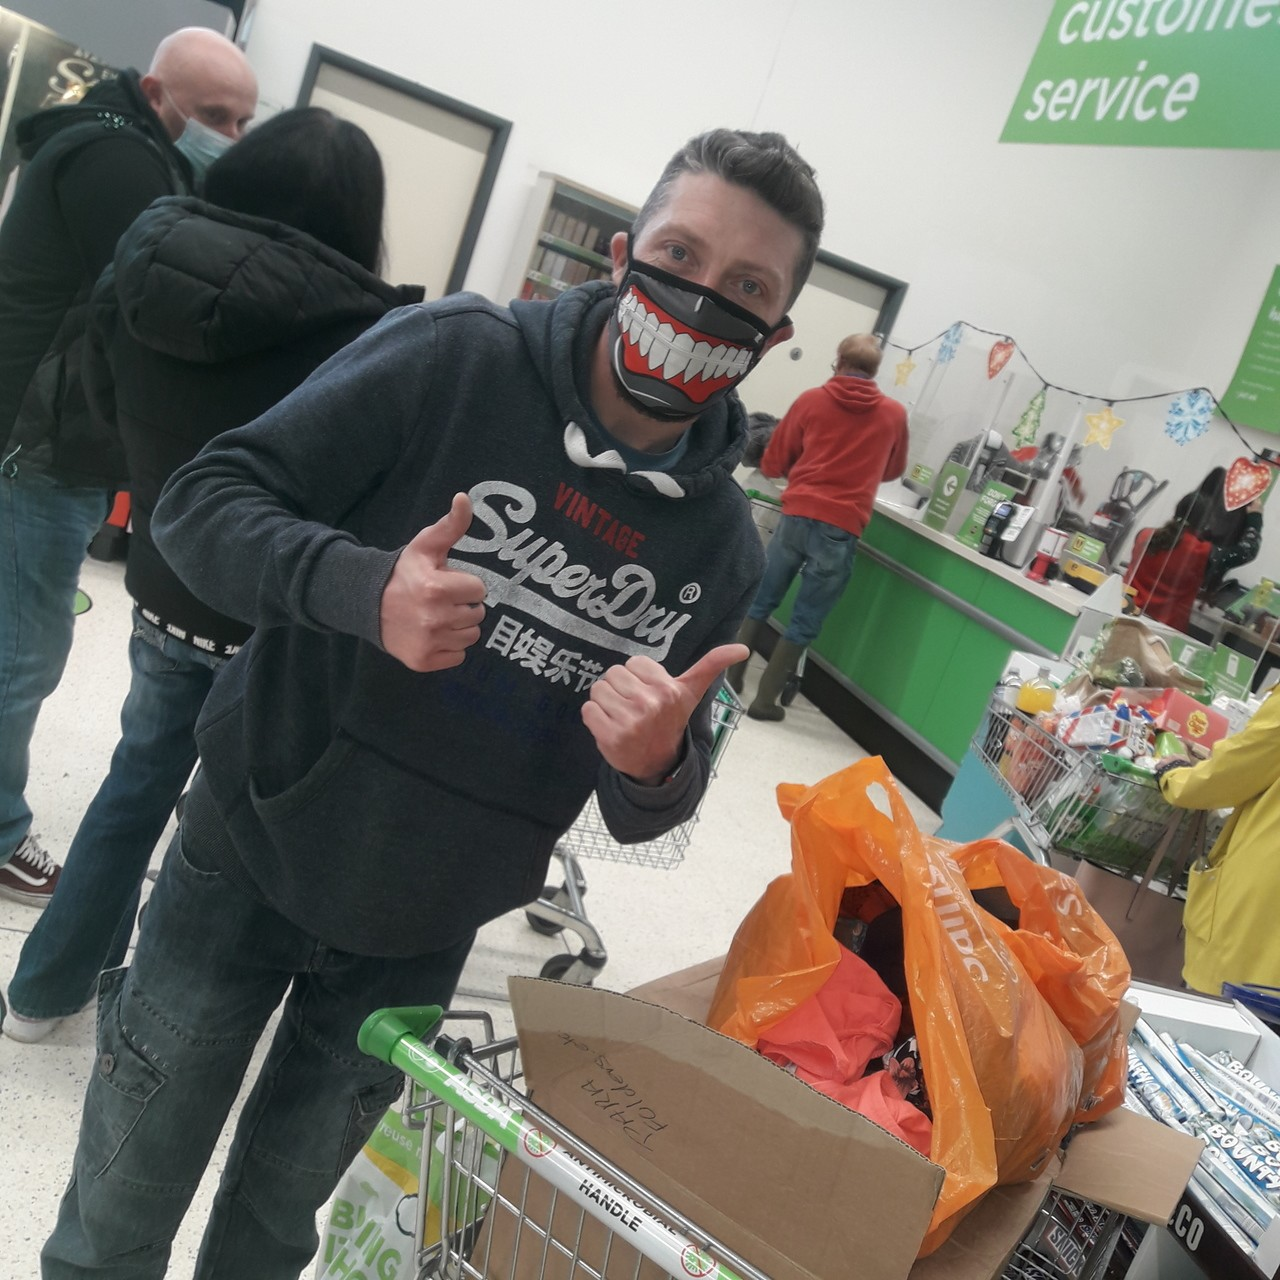 Colleagues donate to homeless charity | Asda Bodmin